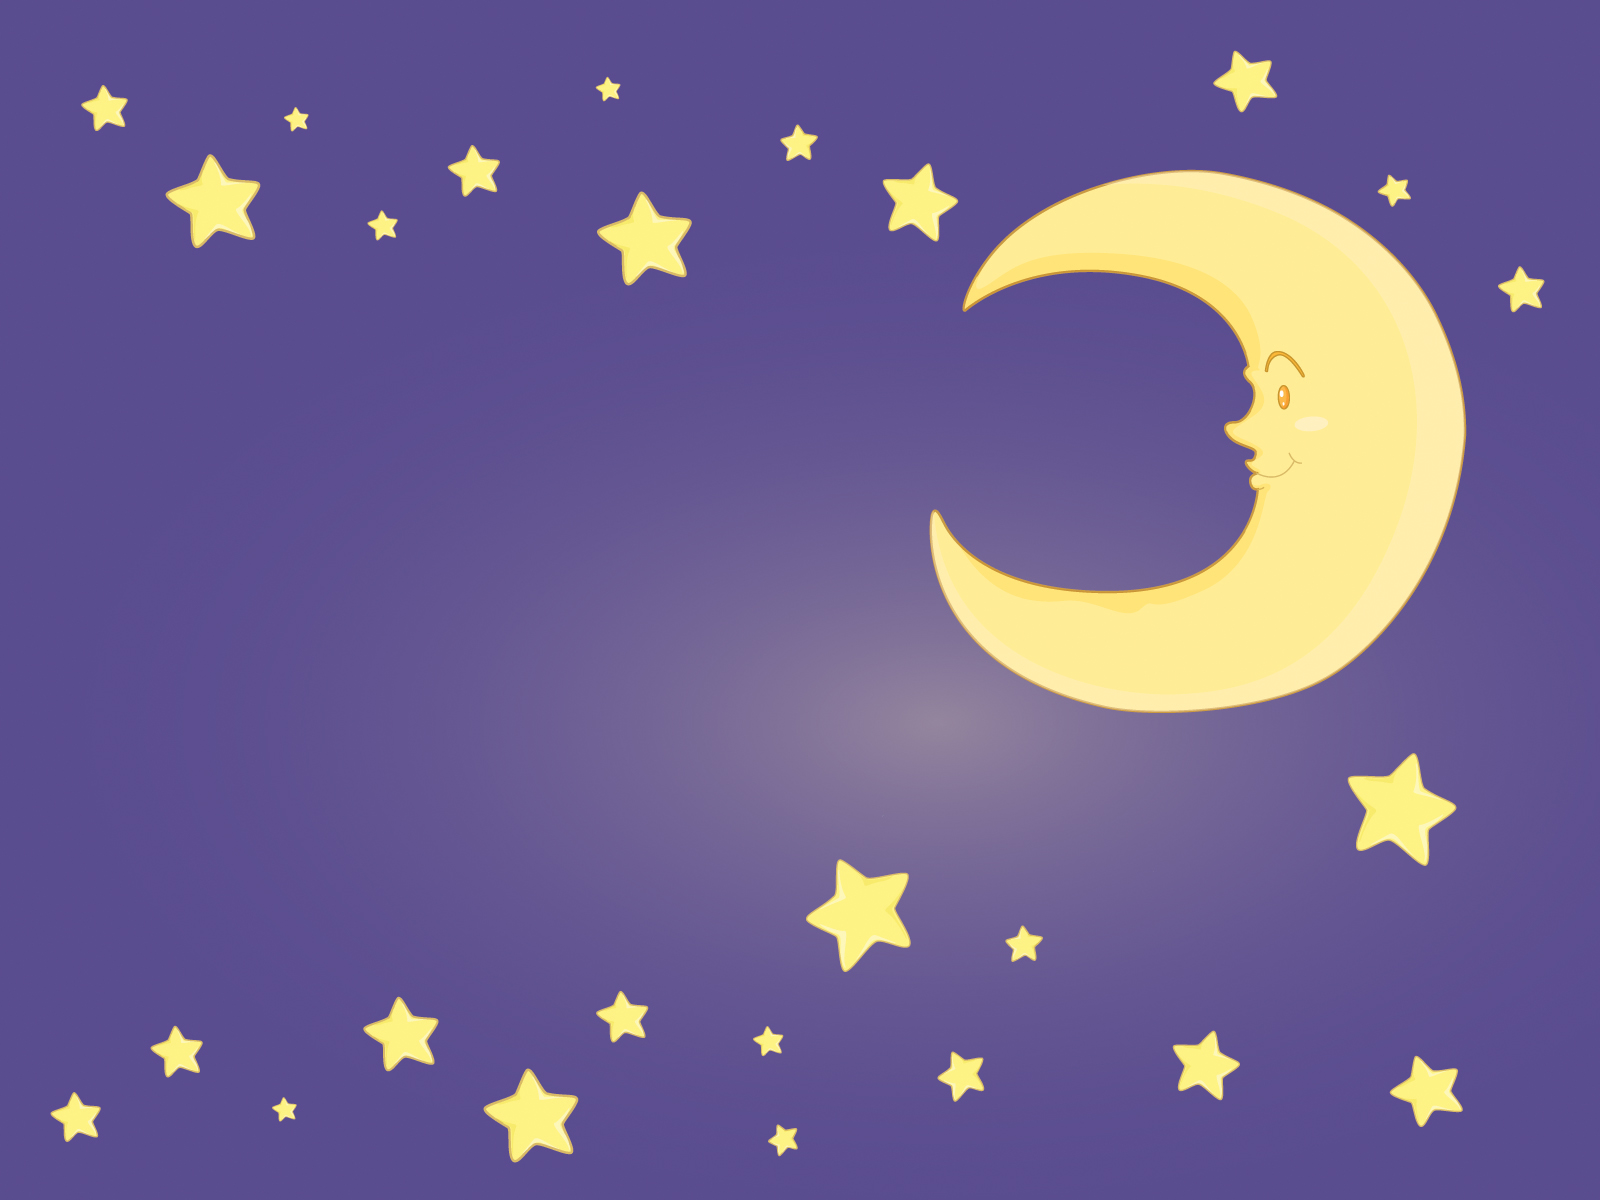 Moon and stars clipart suggest